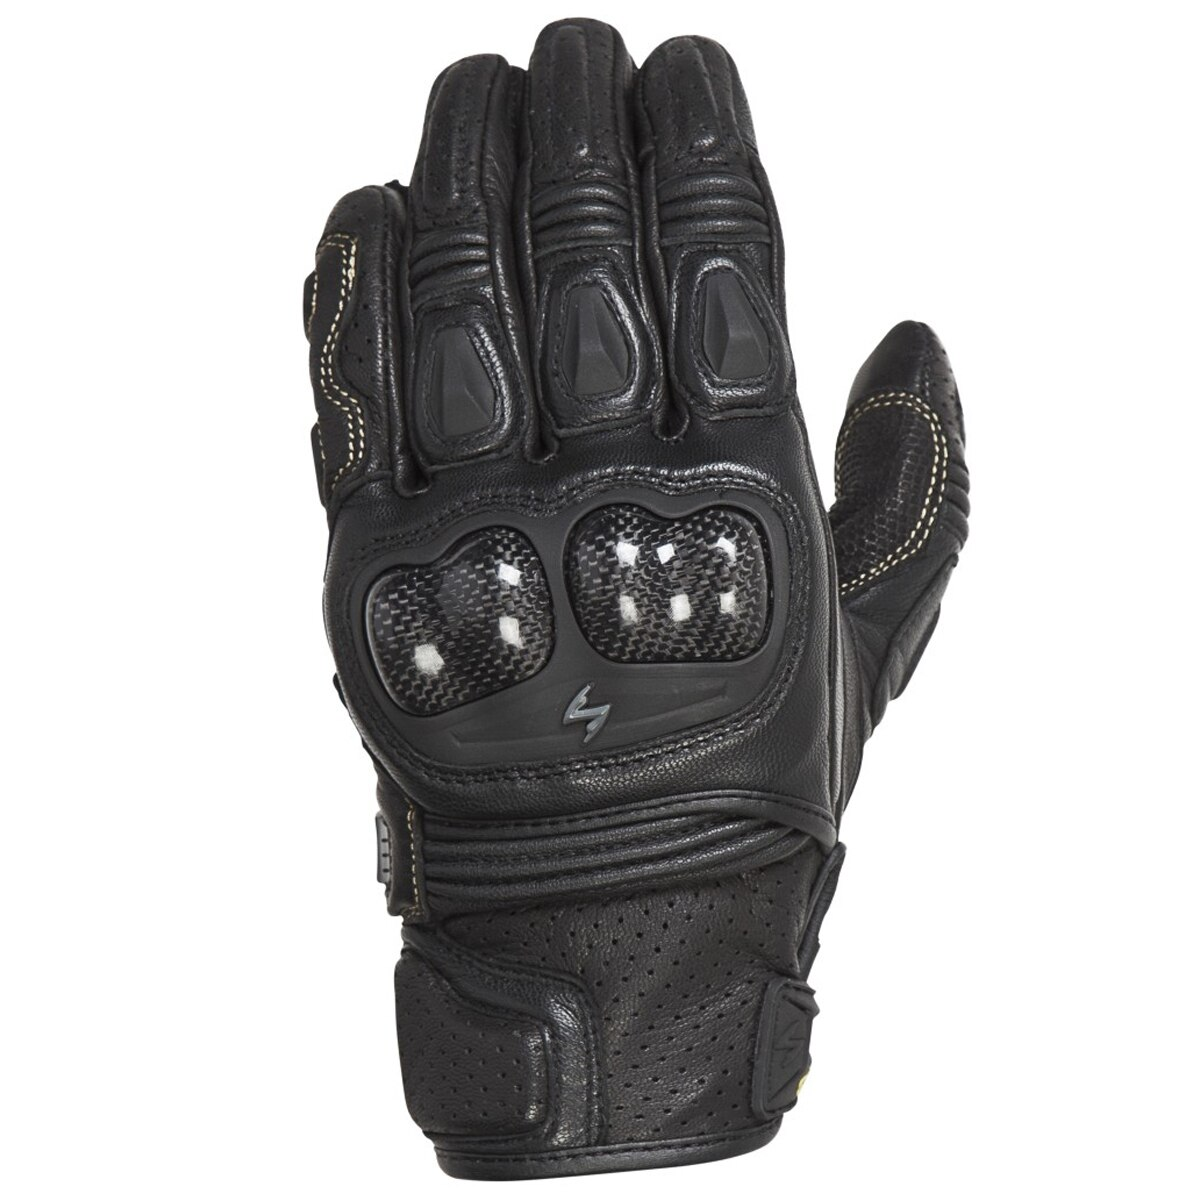 Scorpion SGS MK II Women/'s Gloves